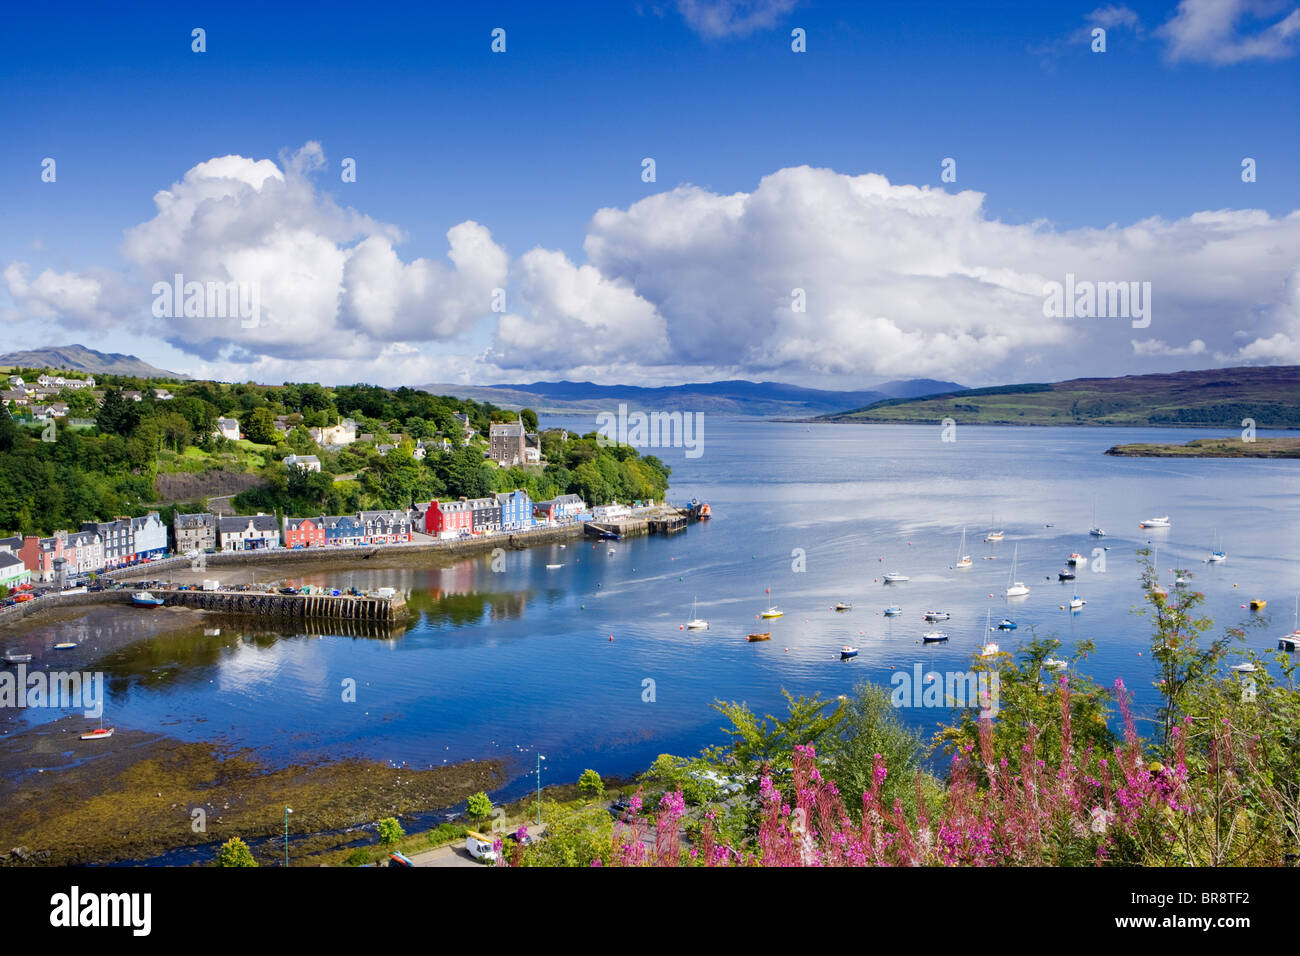 Tobermory, Isle of Mull, Argyll, Scotland, UK. - Stock Image